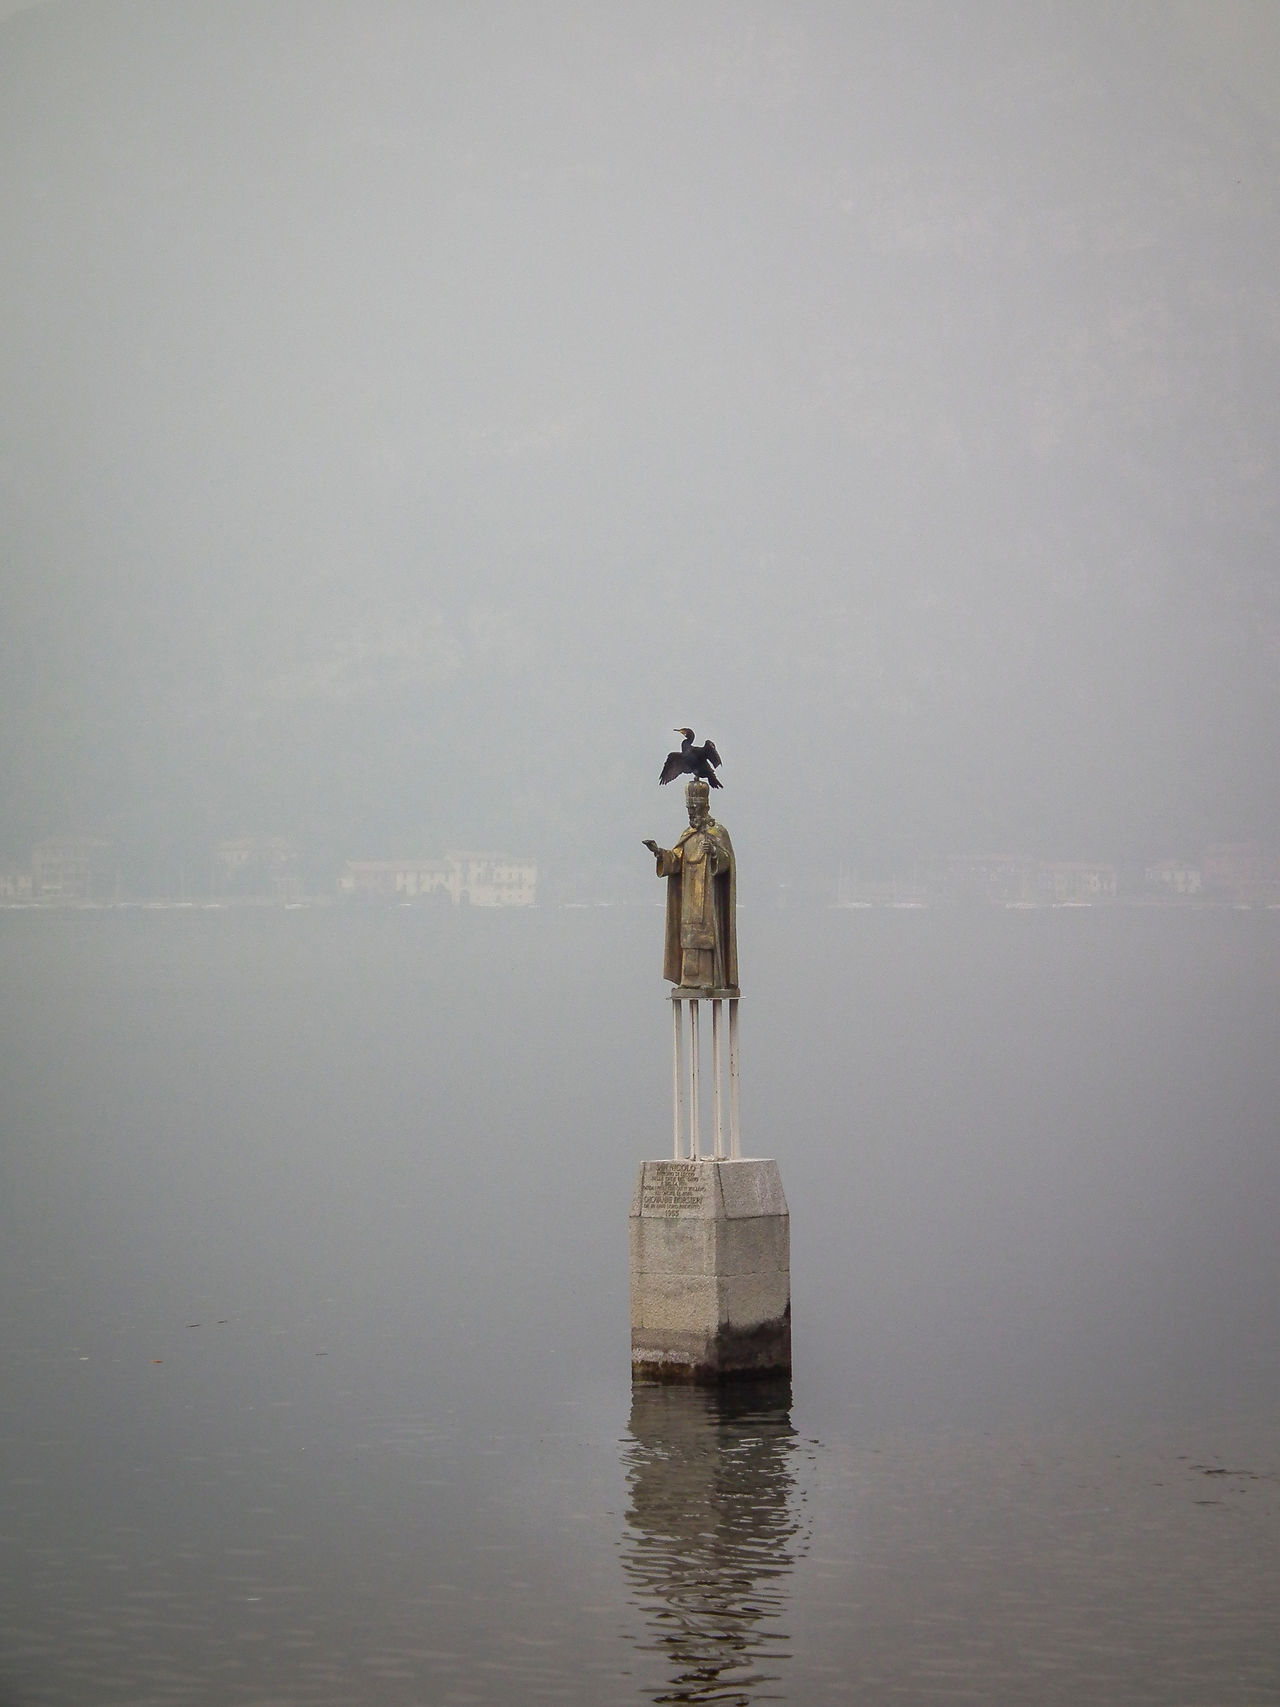 Beauty In Nature Bird Birds Day Horizon Over Water Italia Italie Italien Italy Italy❤️ Italy🇮🇹 Lago Di Como Lake Como Lecco Nature No People Outdoors Perching Sea Sky Statue Statue Vogel Water Waterfront